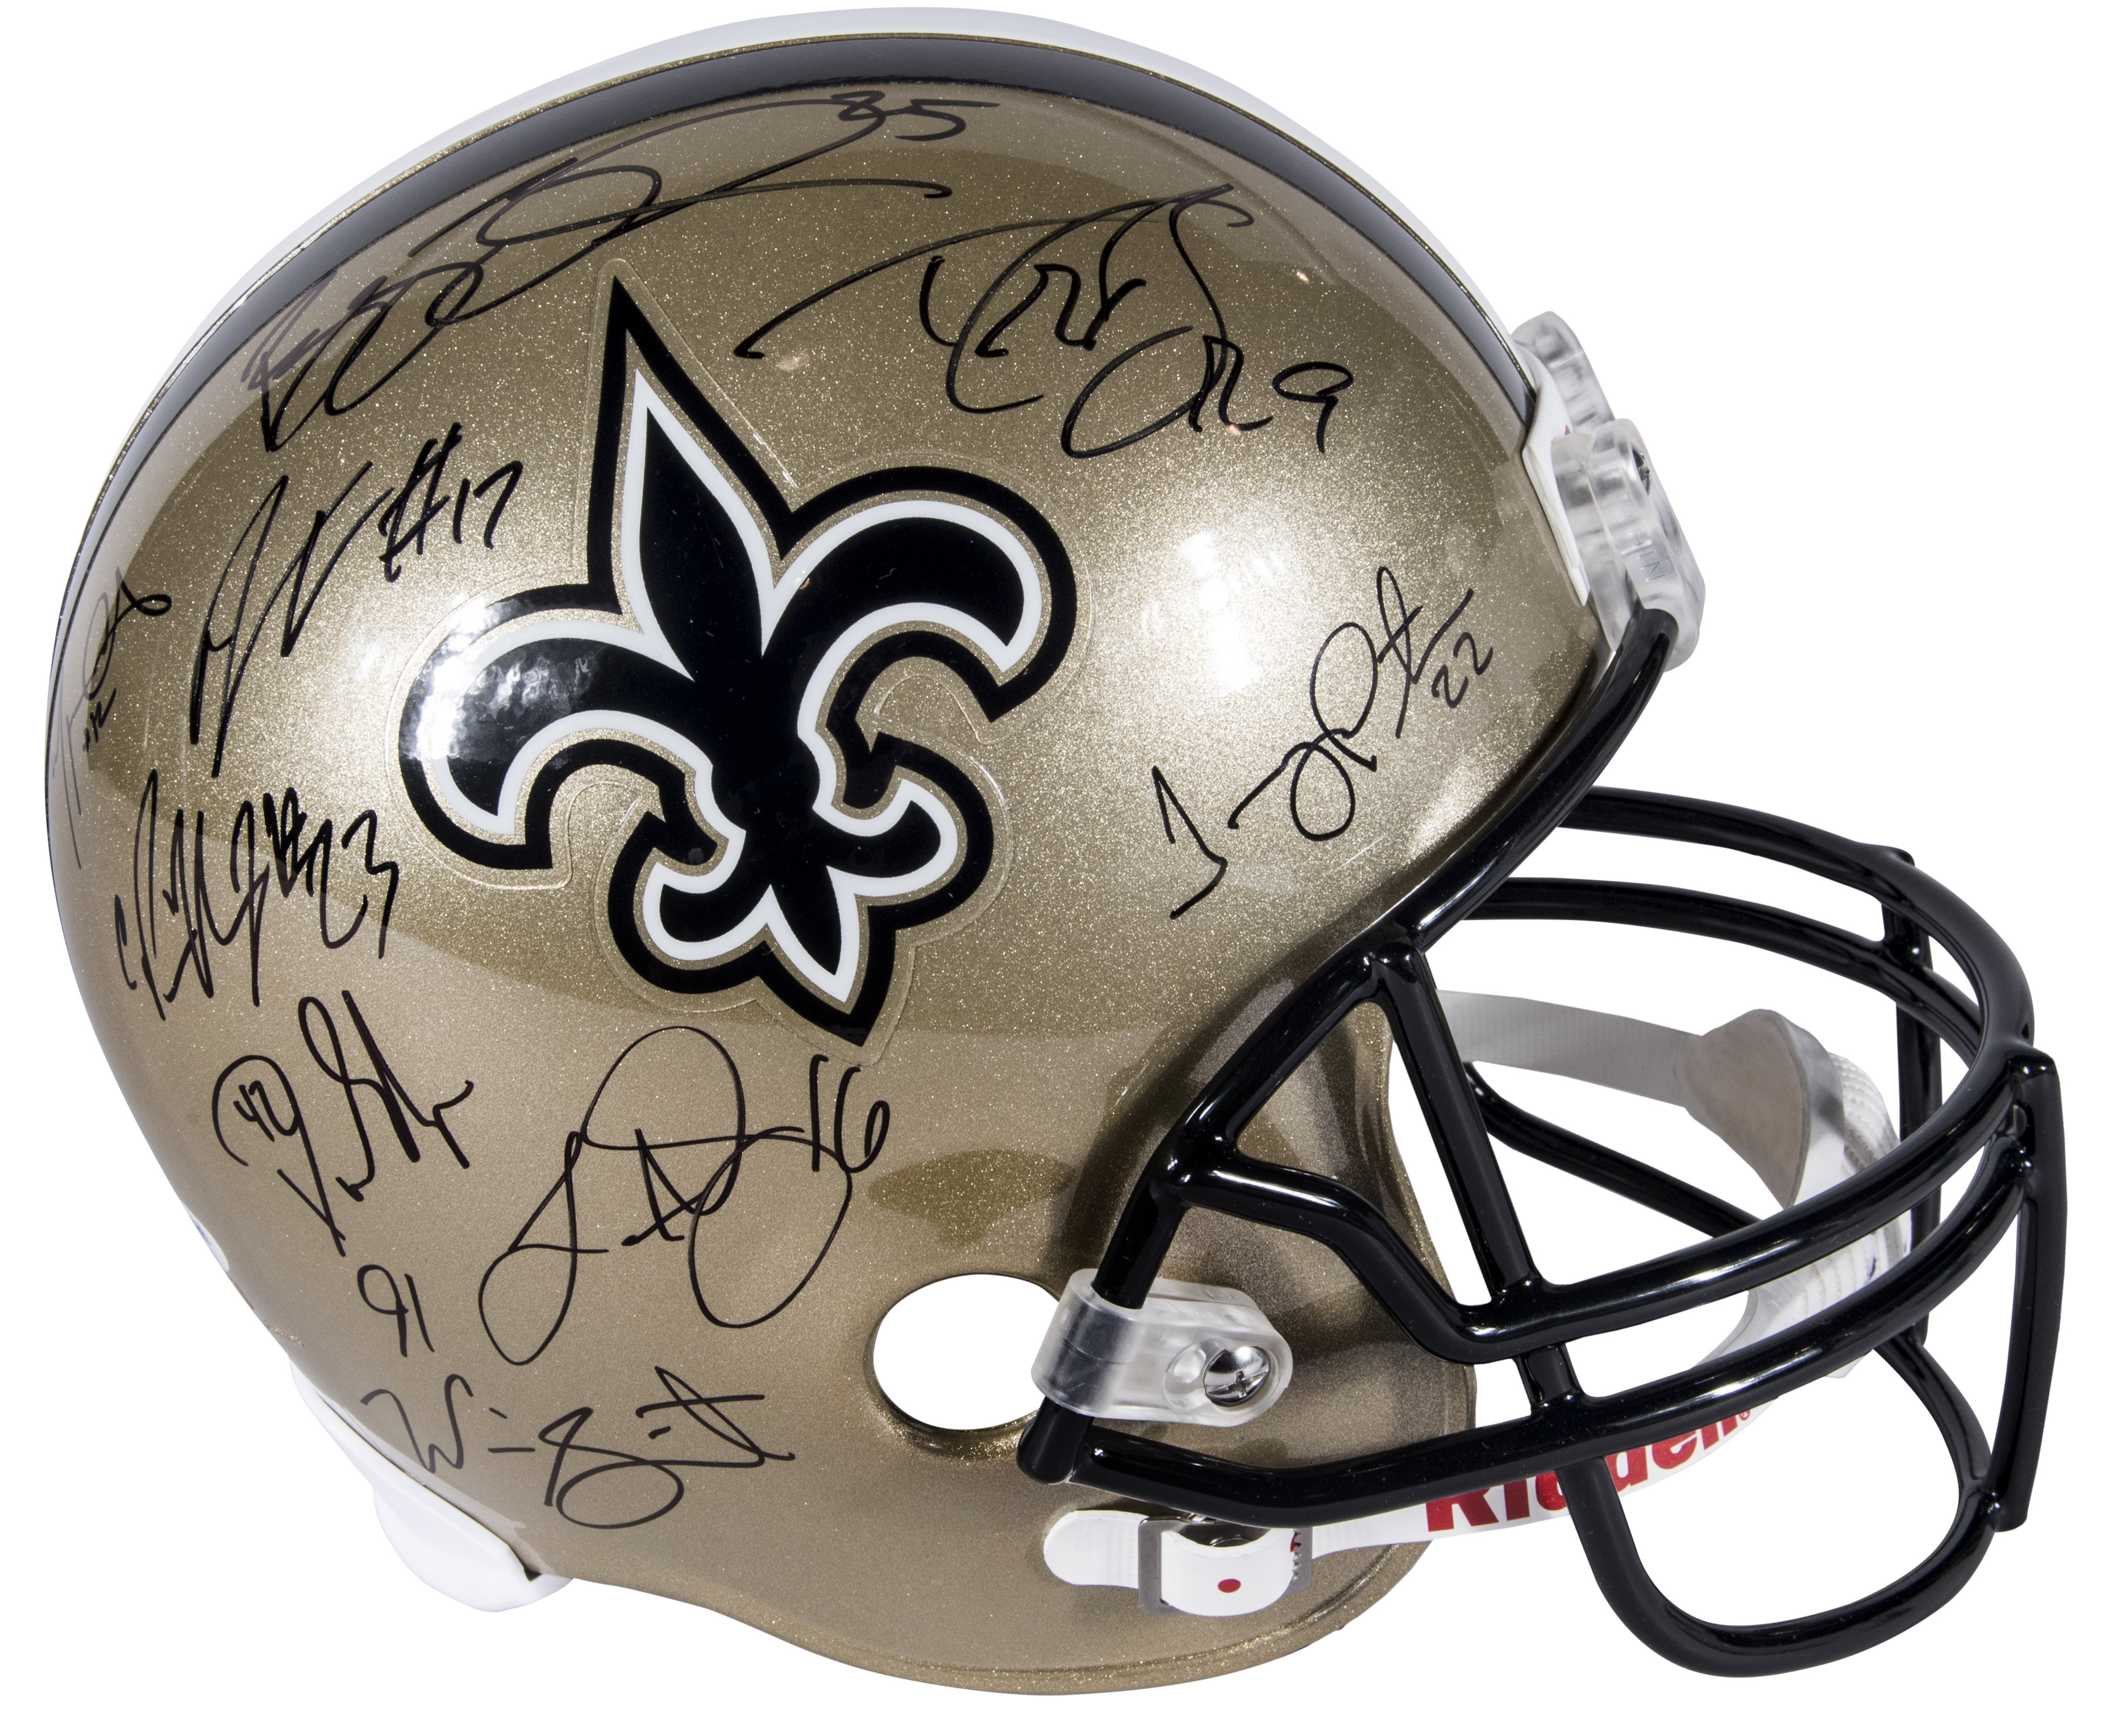 5a73ab52 2009-10 New Orleans Saints Team Signed Helmet with 9 Signatures Including  Brees, Bush & Colston (PSA/DNA)